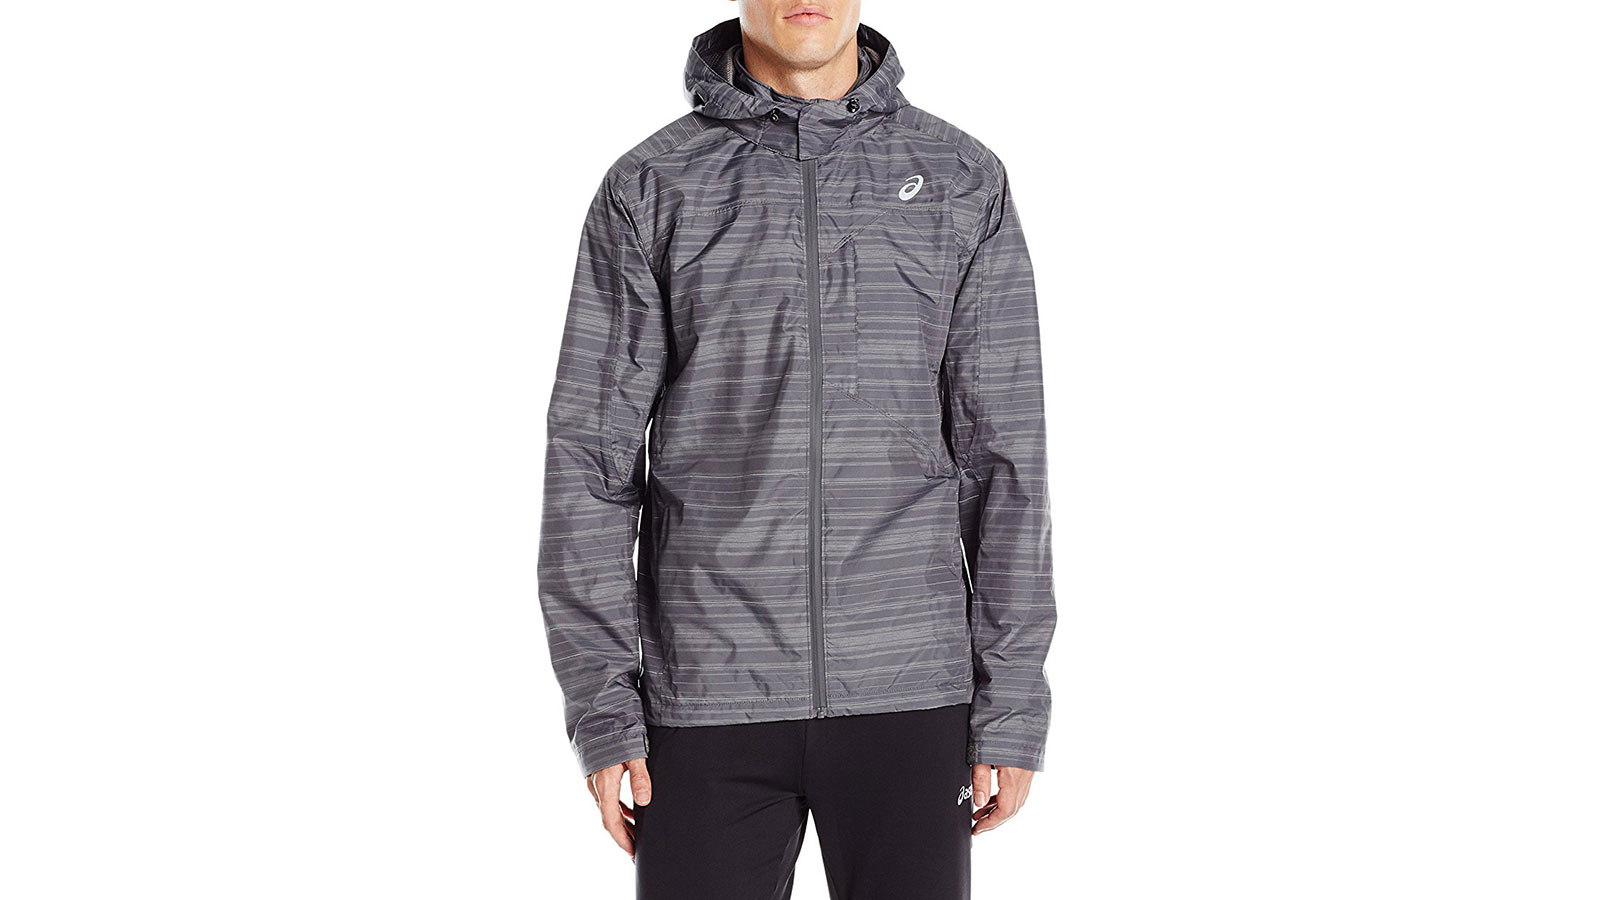 Asics Storm Shelter Running Men's Windbreaker Jacket | the best men's windbreakr jackets